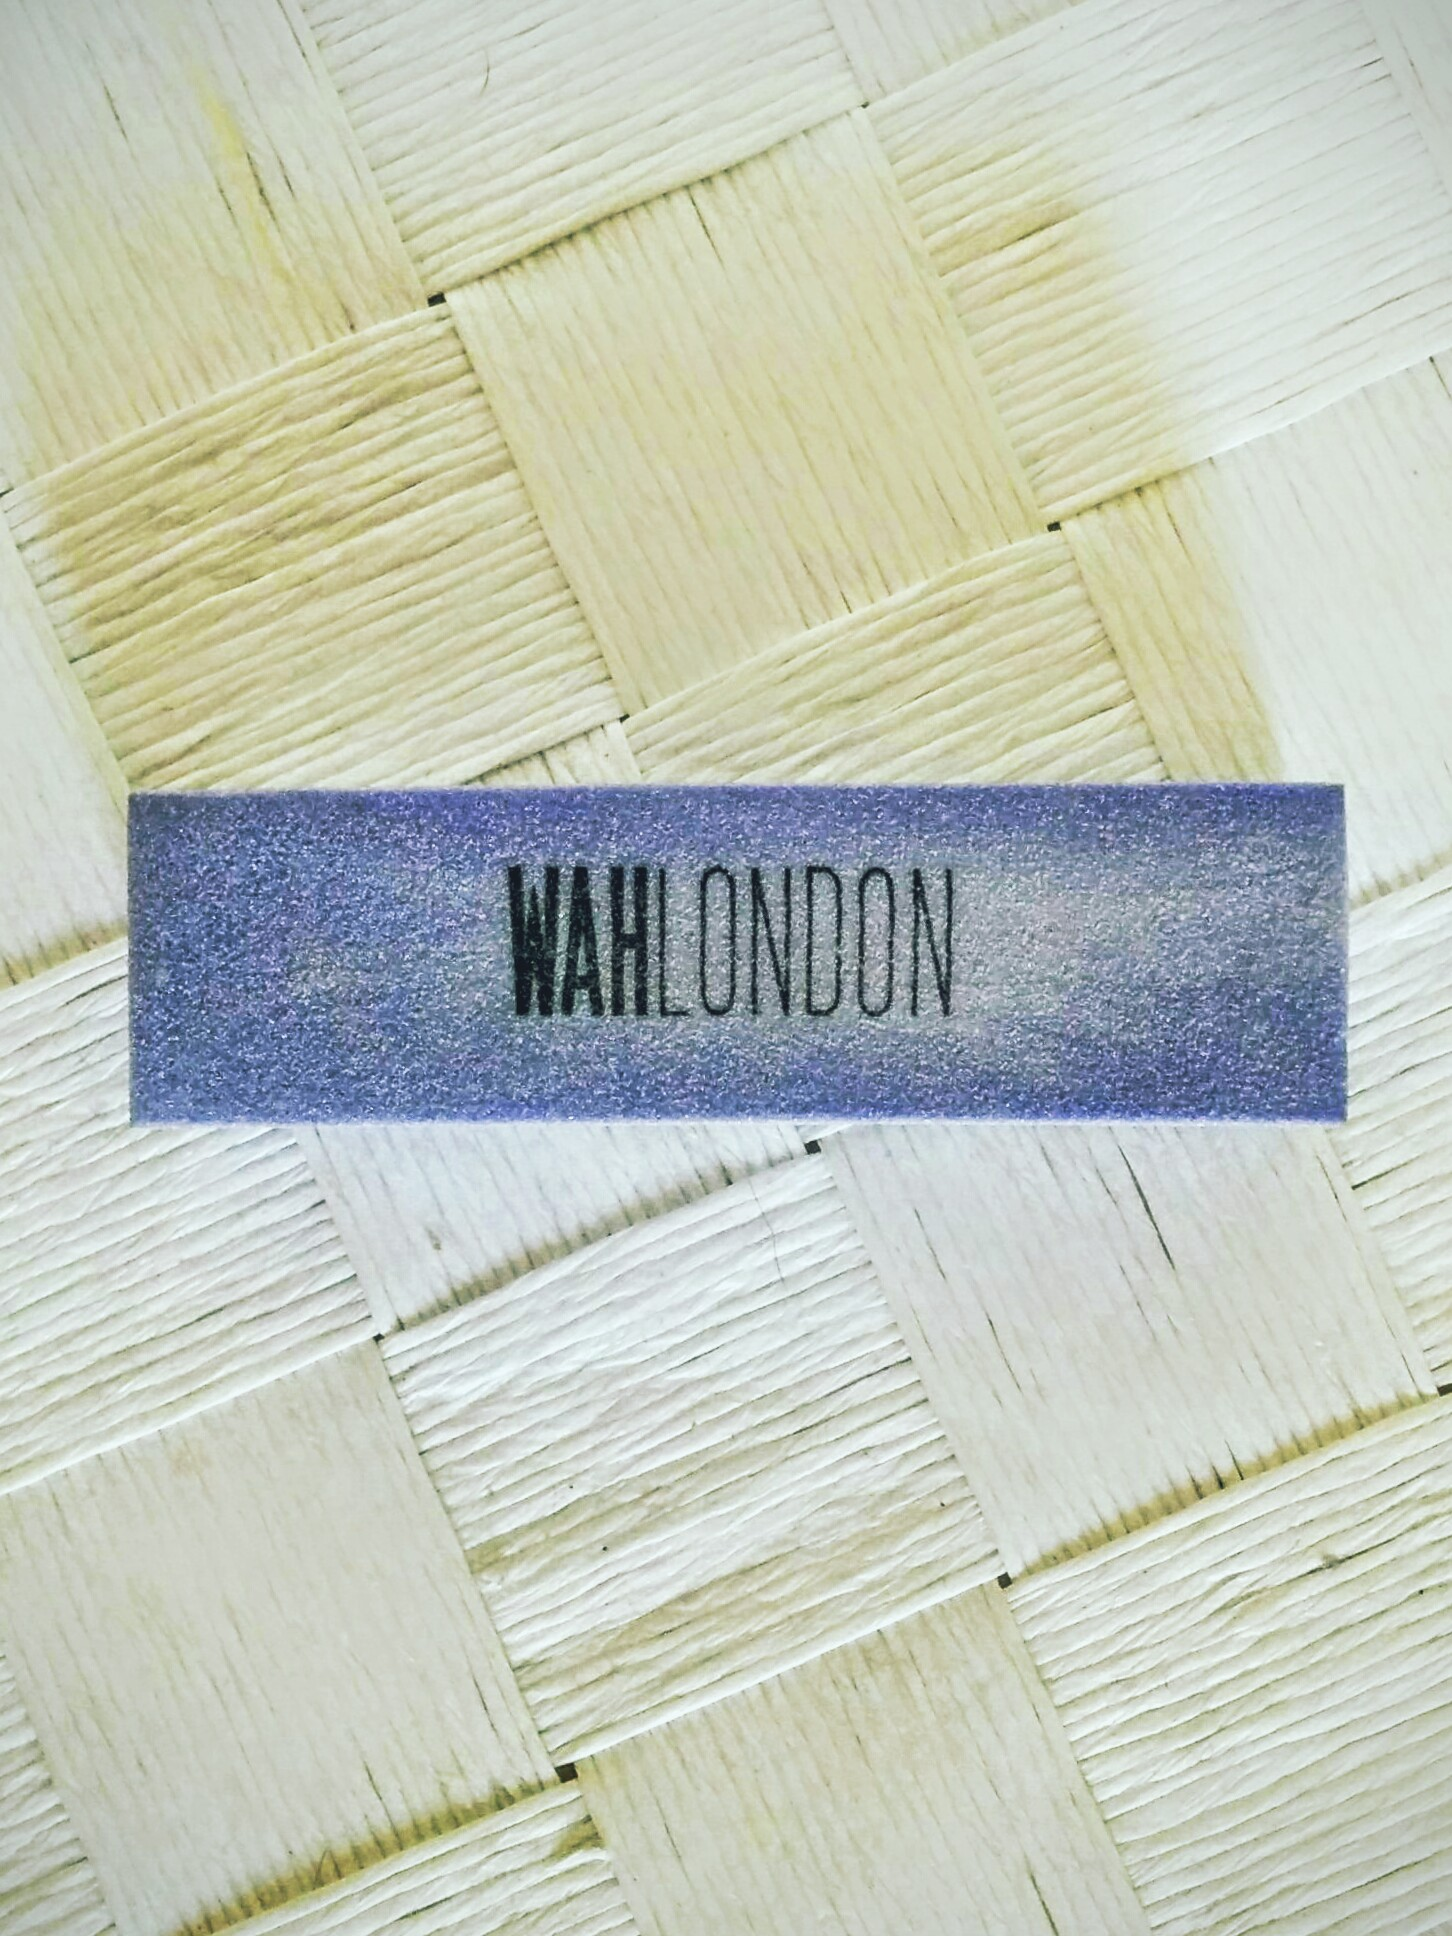 WAH London Nail Buffer